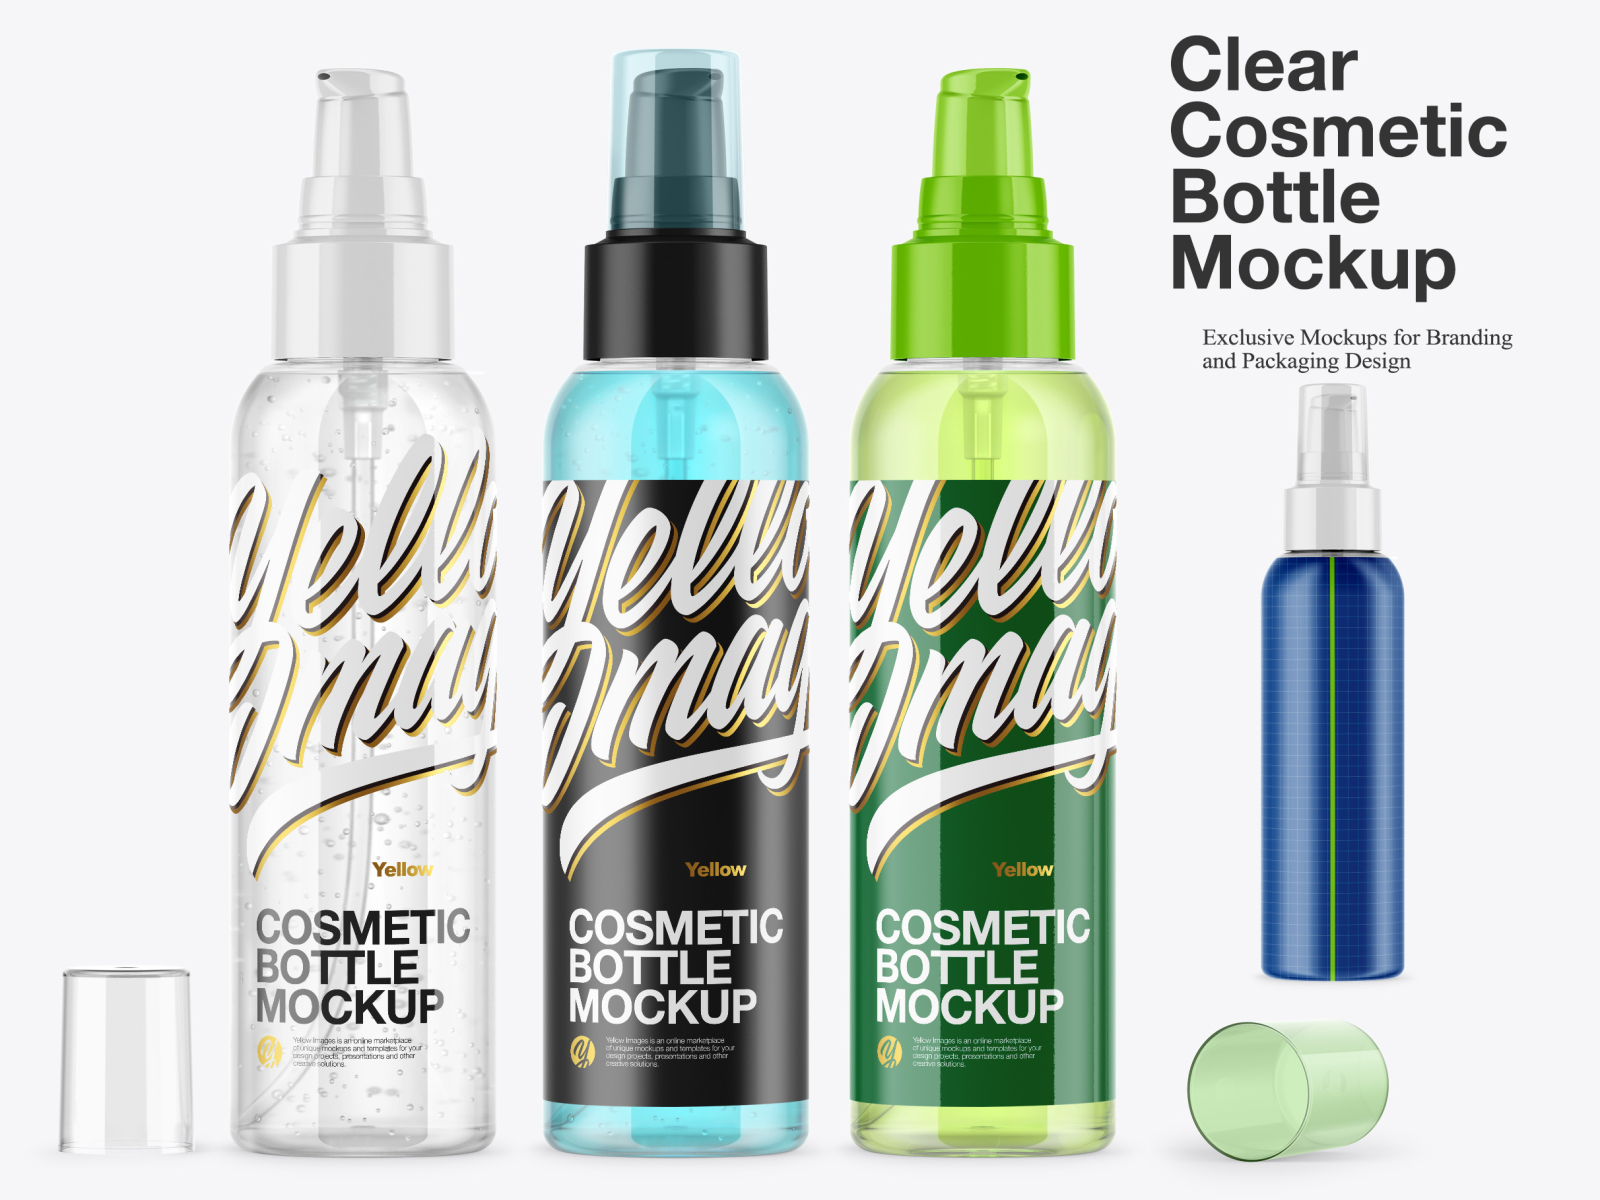 Download Clear Cosmetic Bottle Mockup By Oleksandr Hlubokyi On Dribbble PSD Mockup Templates